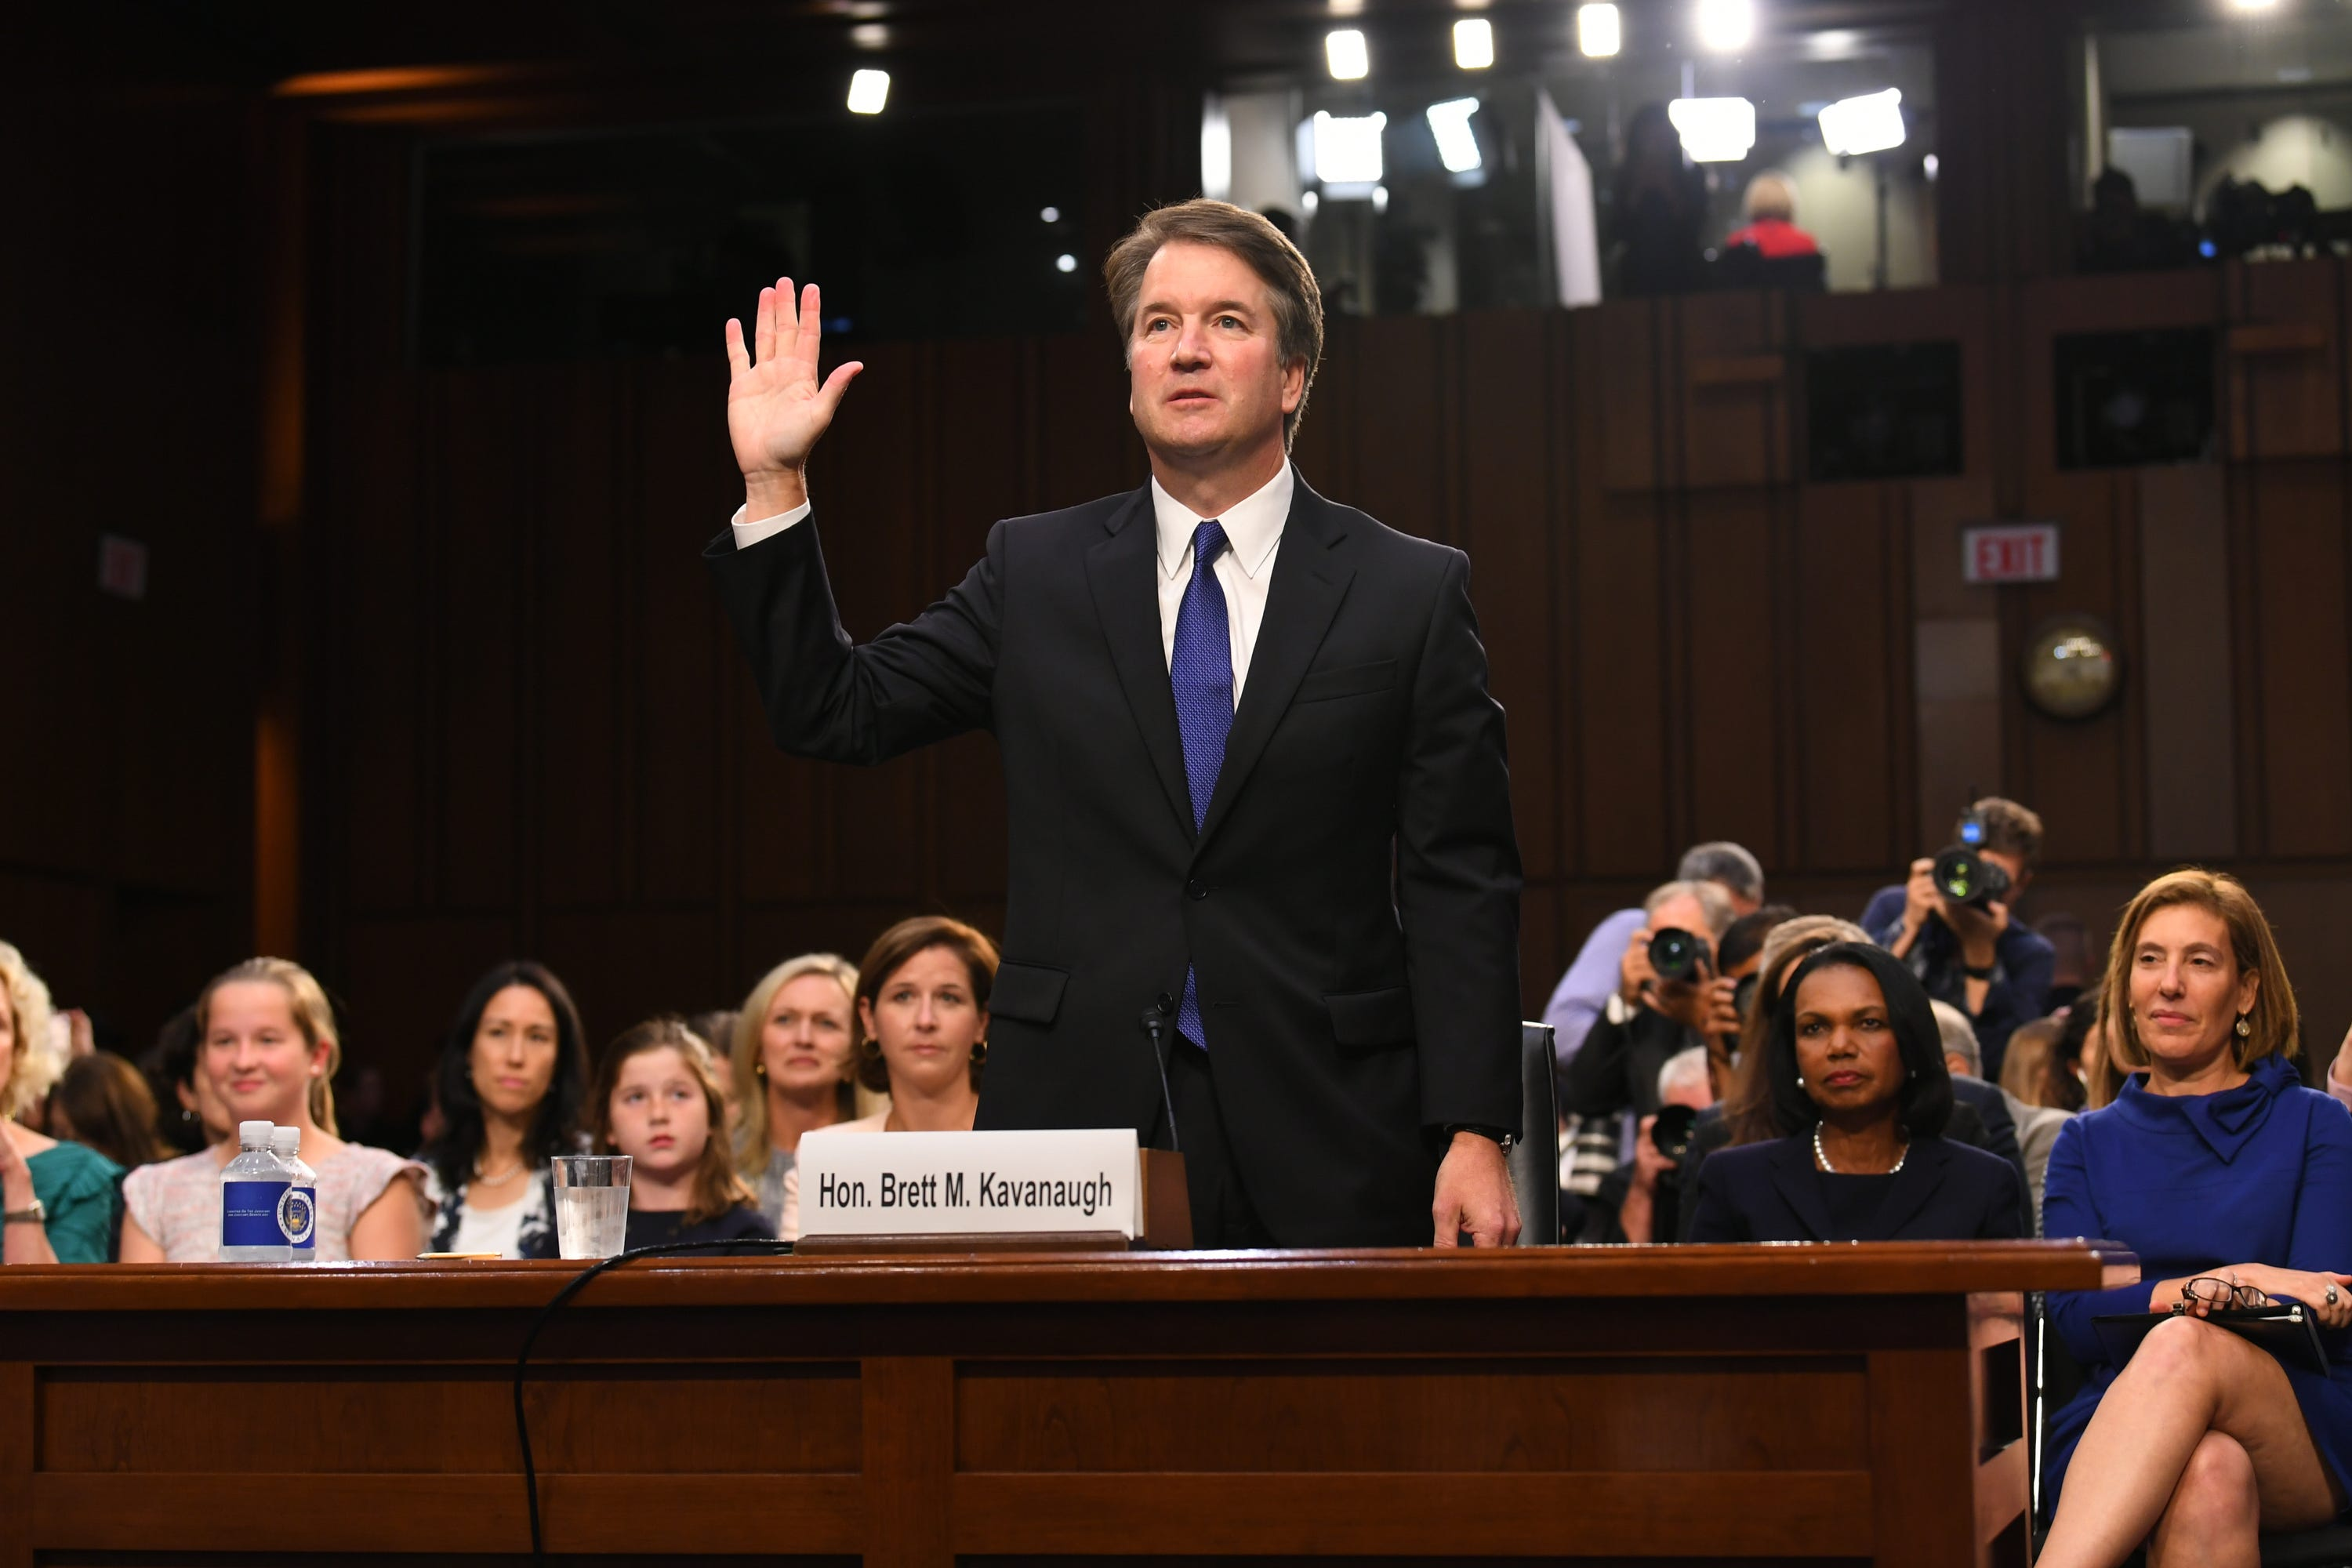 Brett Kavanaugh: Supreme Court nominee faces grilling on abortion, guns, health care